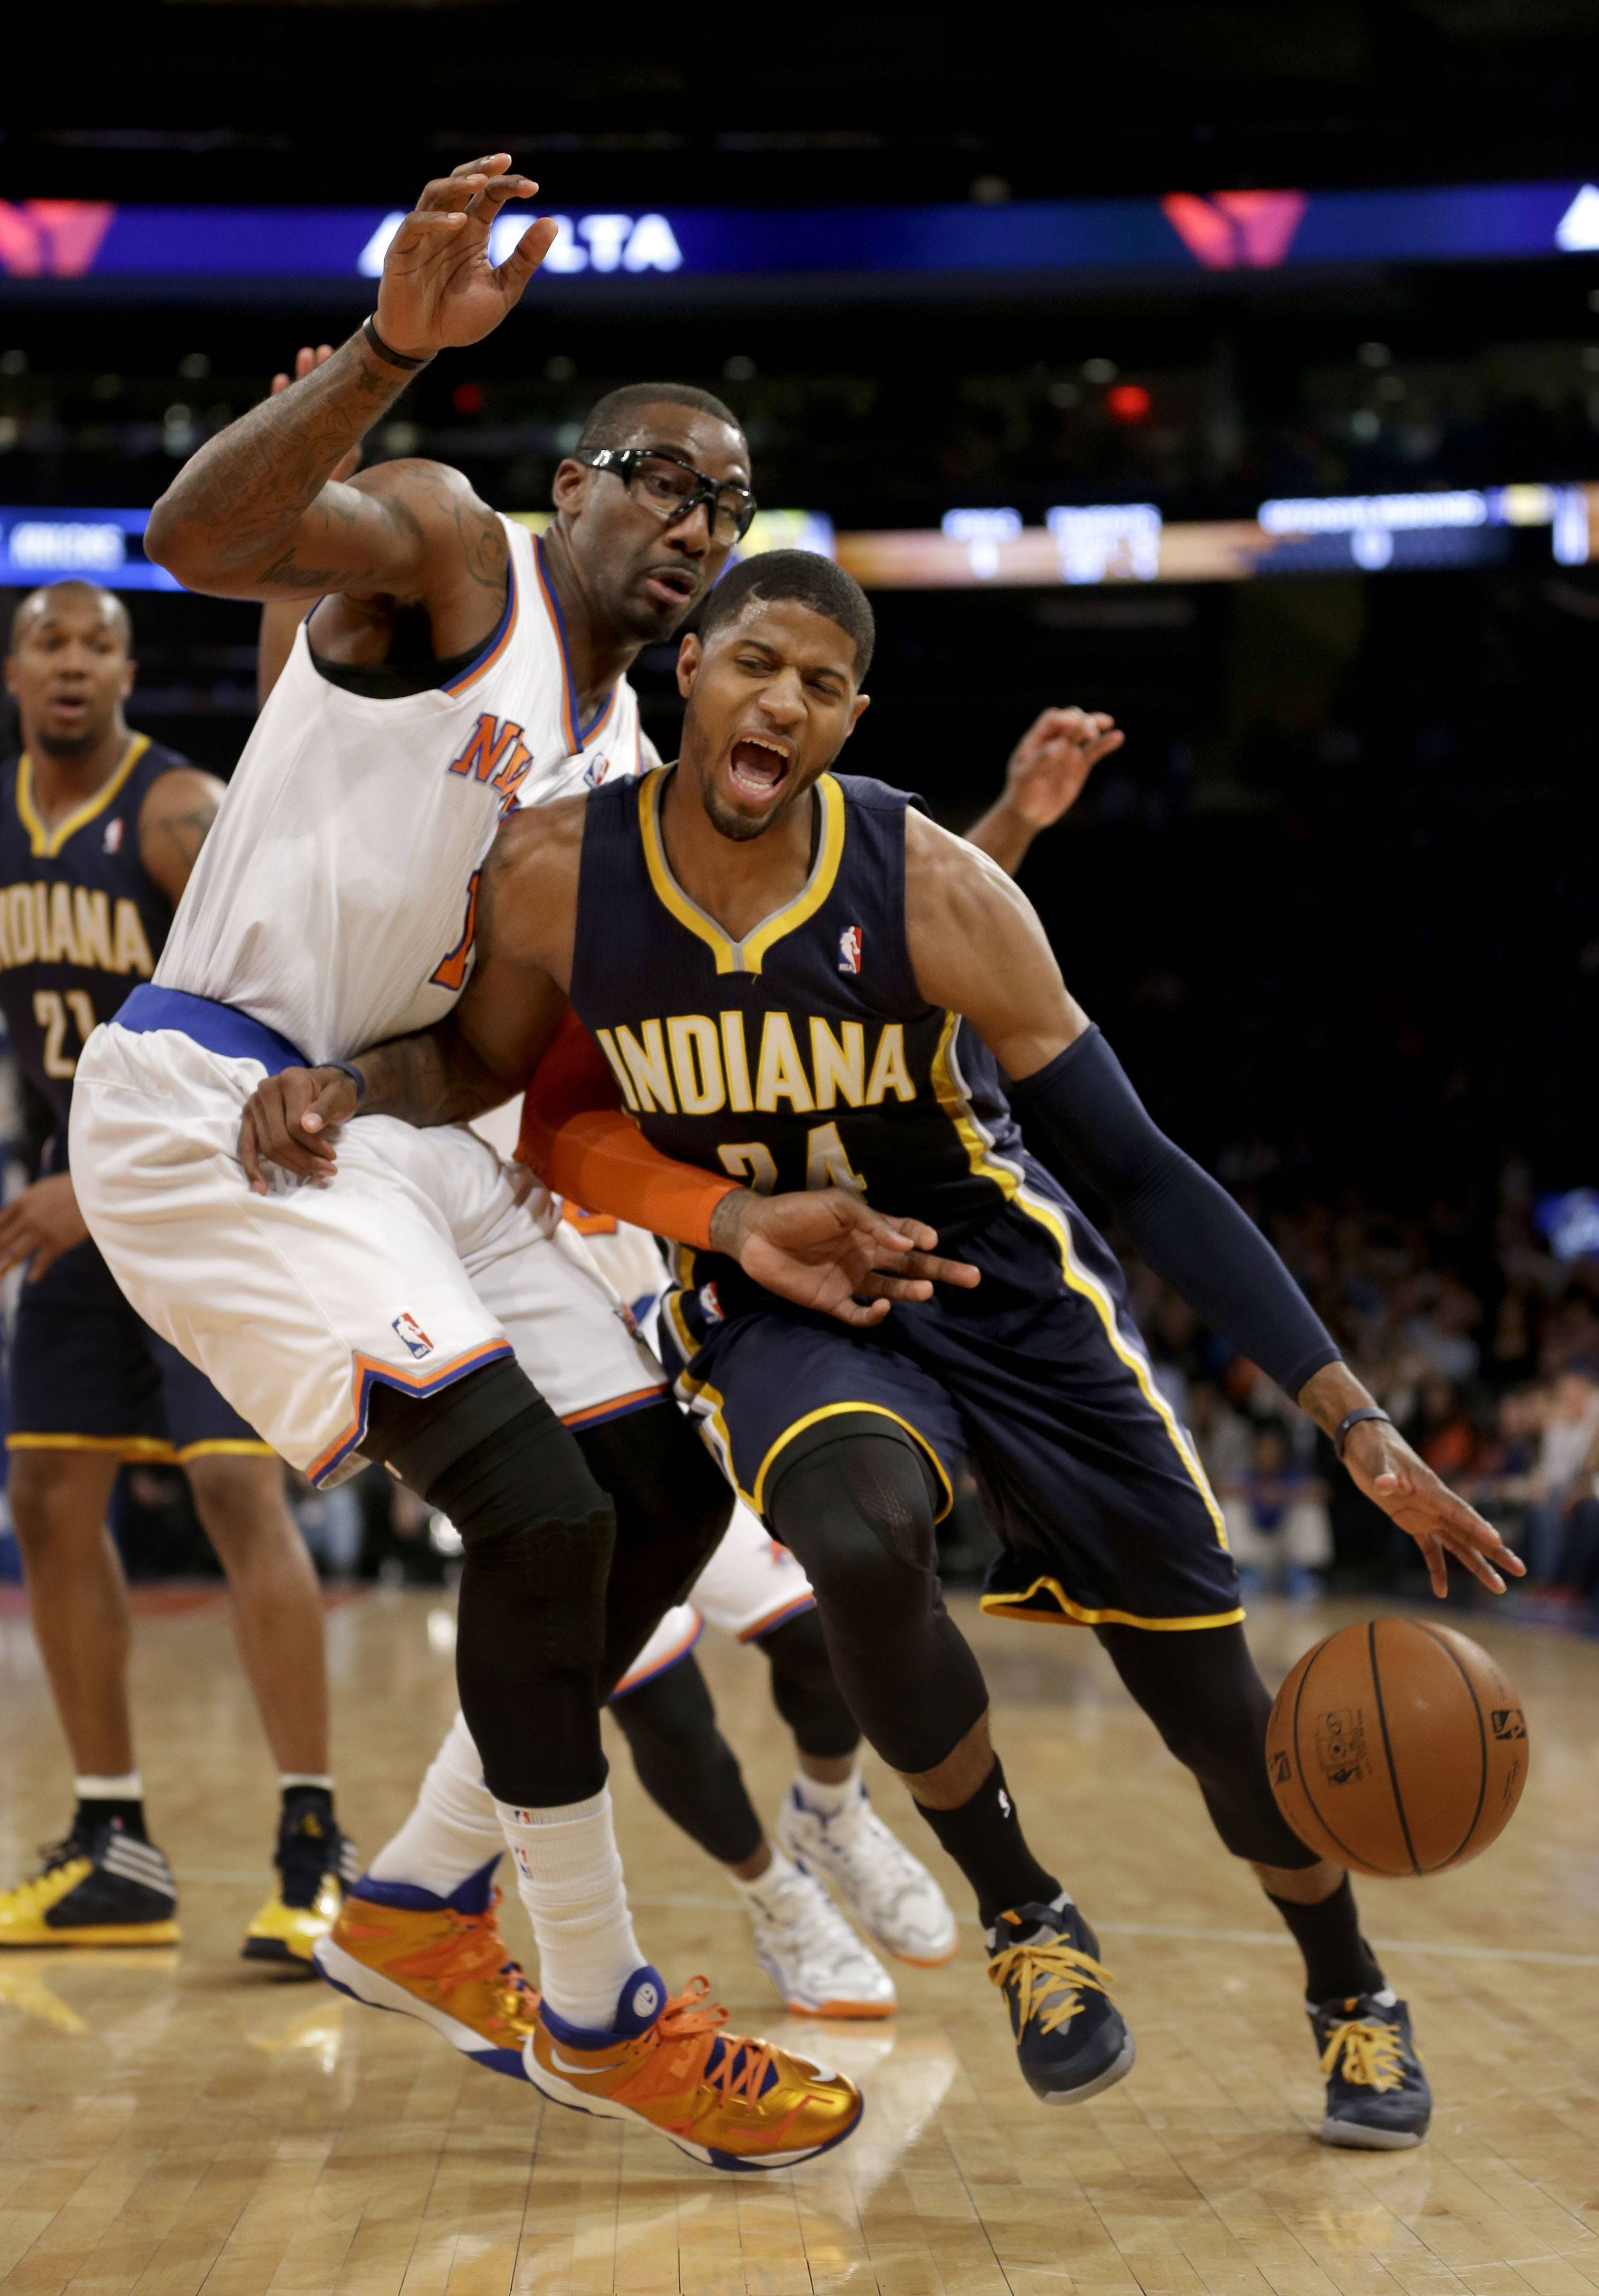 Associated PressIndiana Pacers' Paul George, right, pushes past New York Knicks' Amare Stoudemire during the first half at Madison Square Garden.